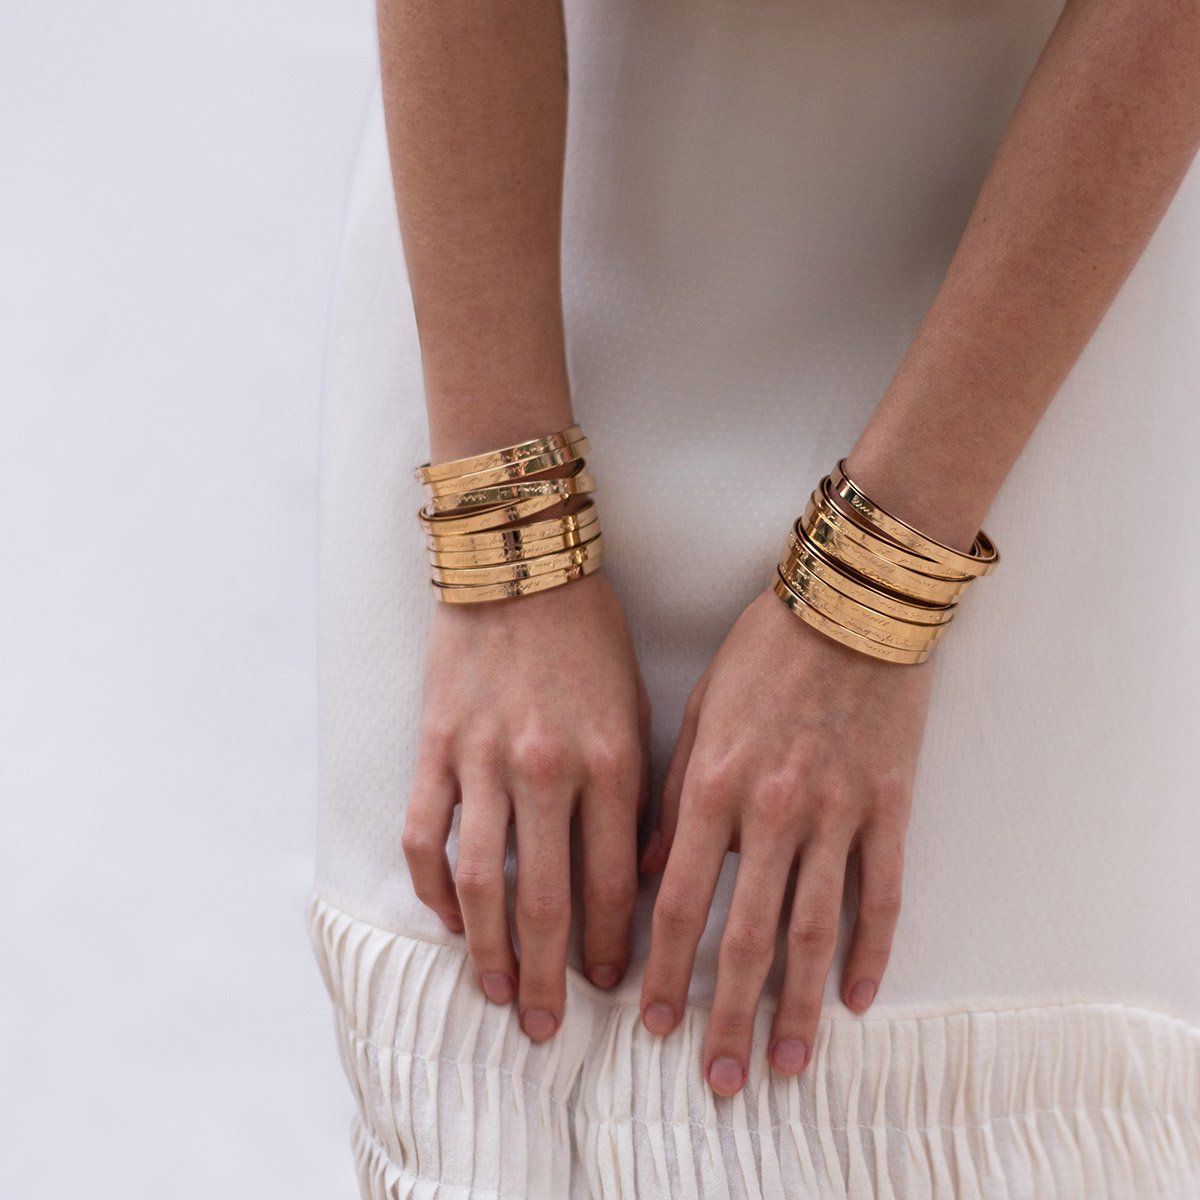 Camila Sarpi manuscript cuffs are gold plated brass and they come with wishes of abundance in Camila's native language, Portuguese. Price is for 1 individual cuff.